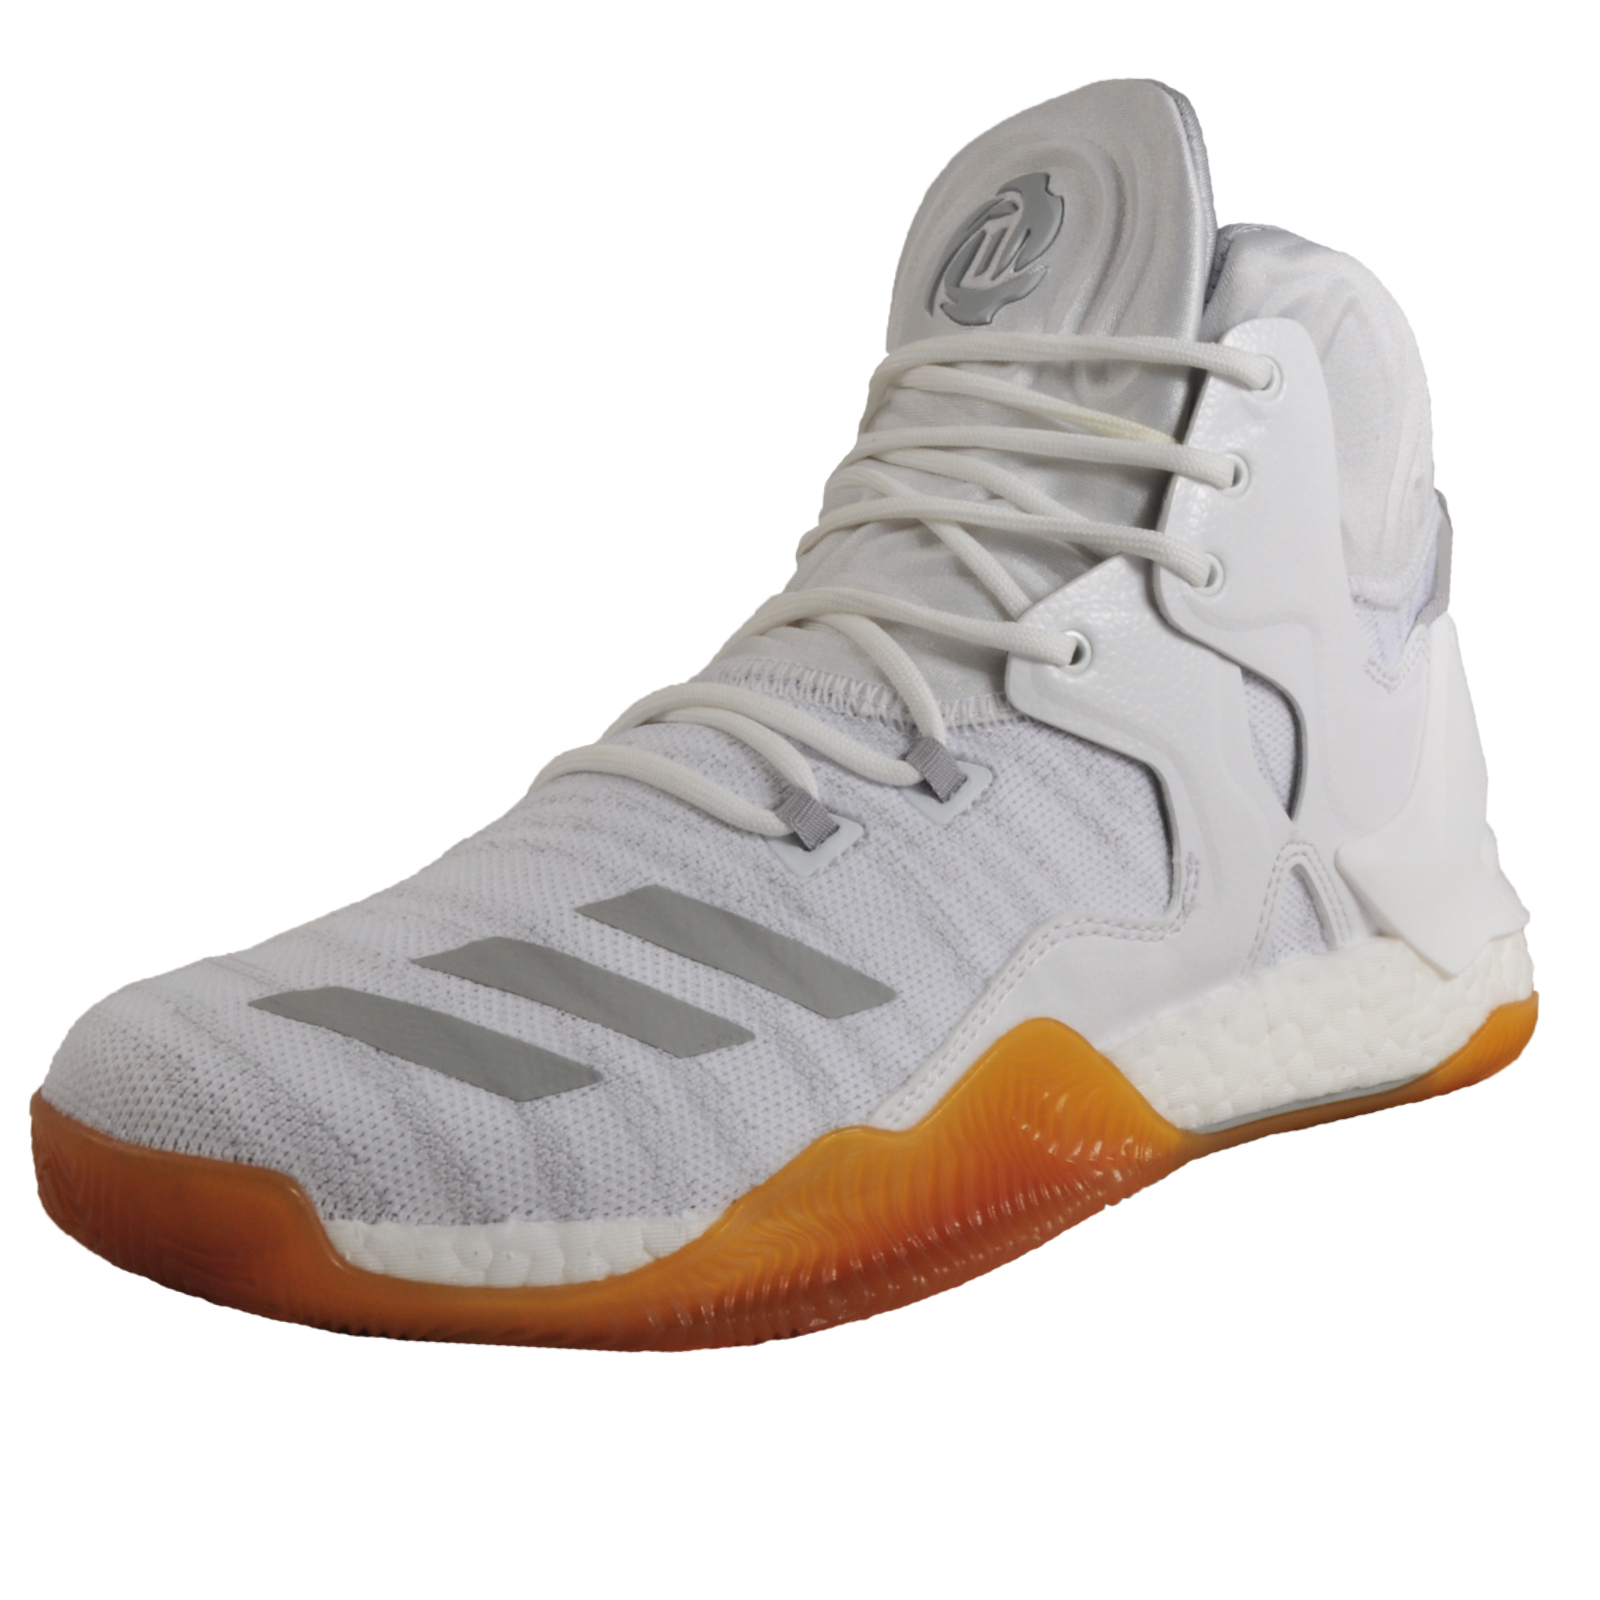 26f7a05180d3a Details about Adidas D Rose PK Primeknit Mens Premium High Top Basketball  Trainers White